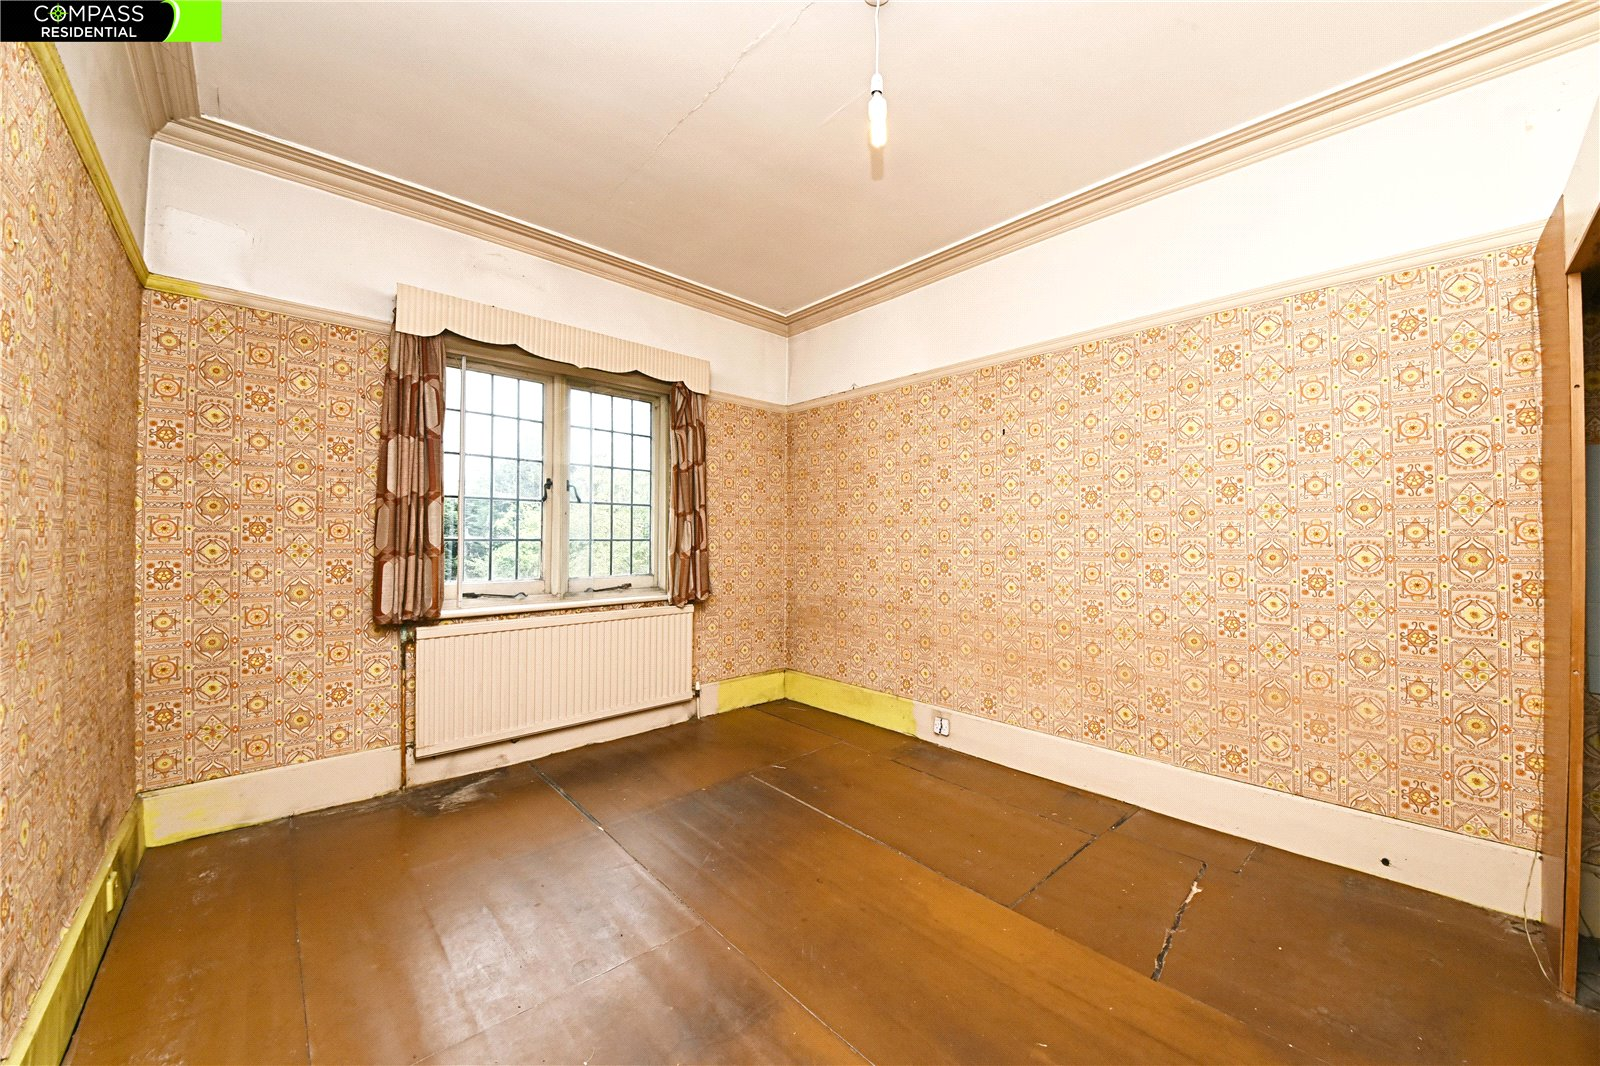 6 bed house for sale in Whetstone, N20 0NN  - Property Image 12